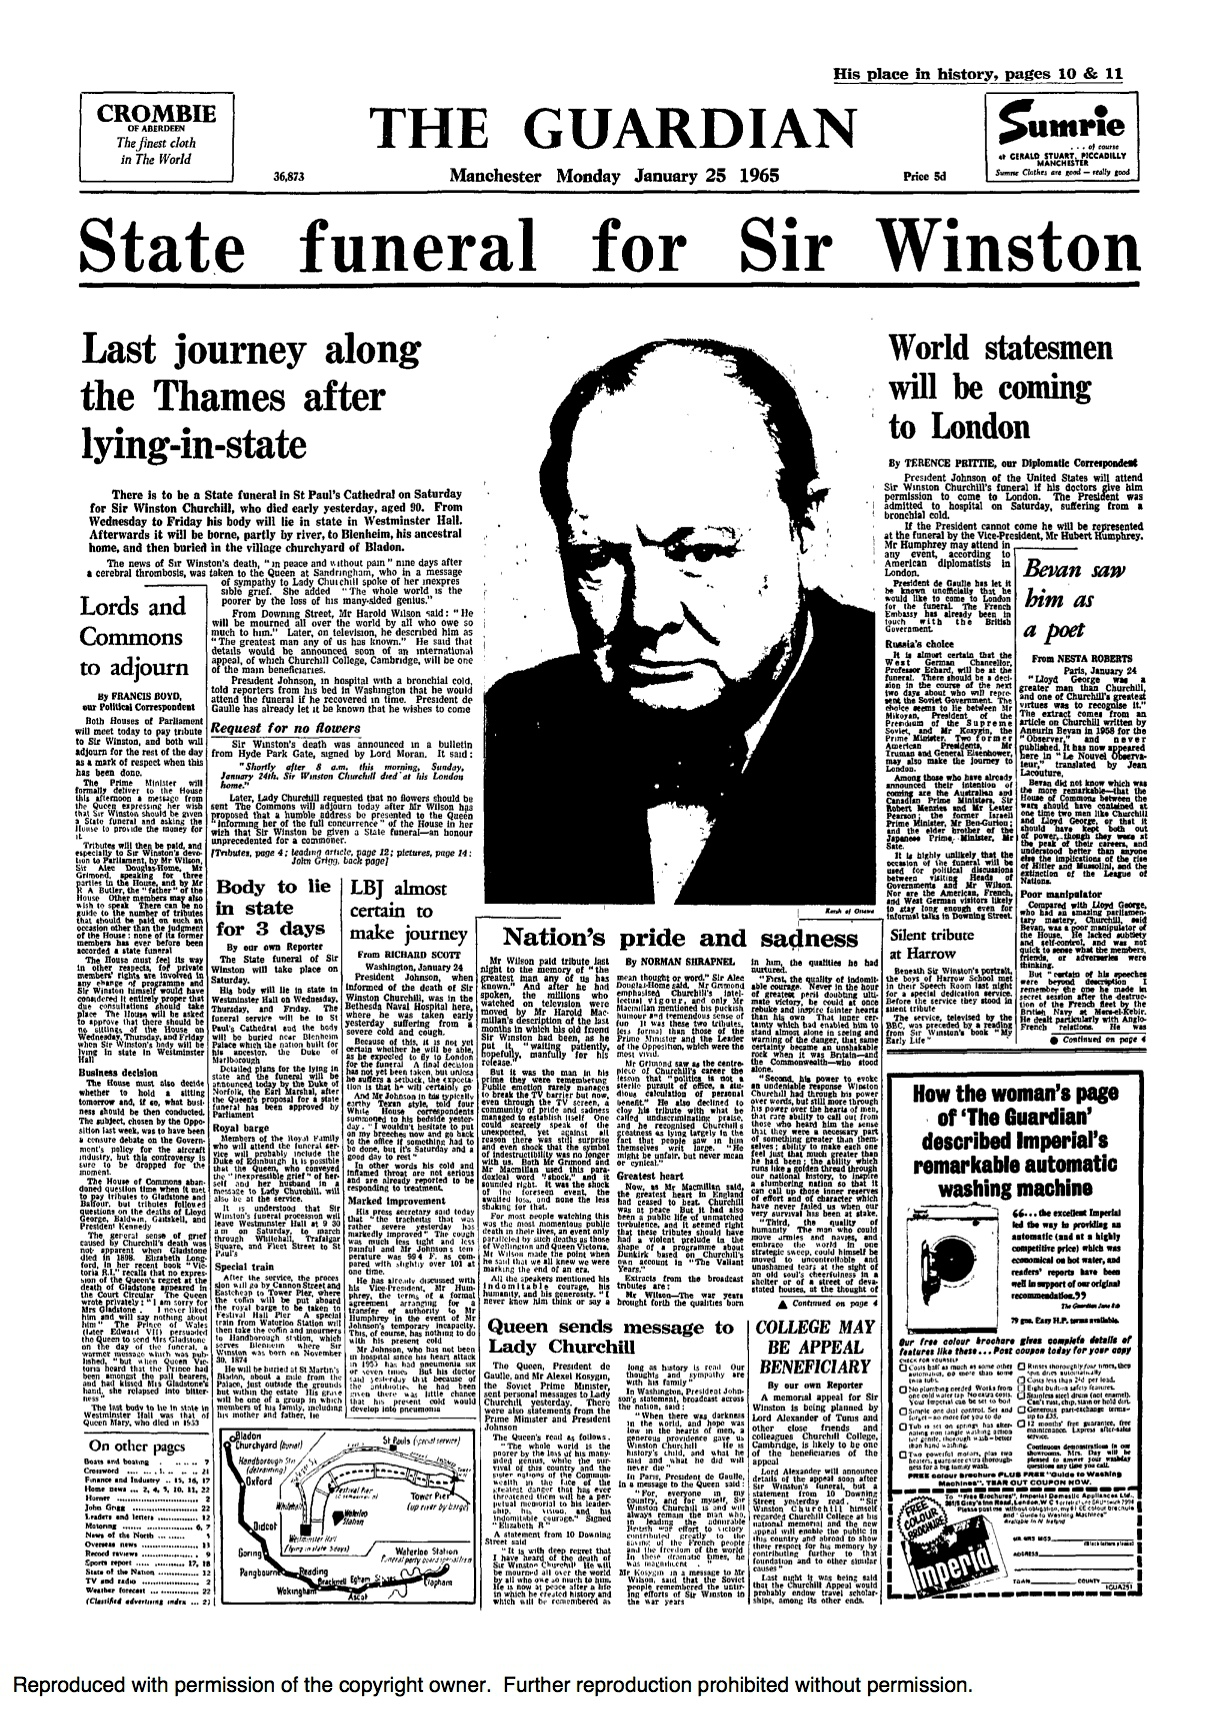 The death of Winston Churchill: reports from the Guardian and ...